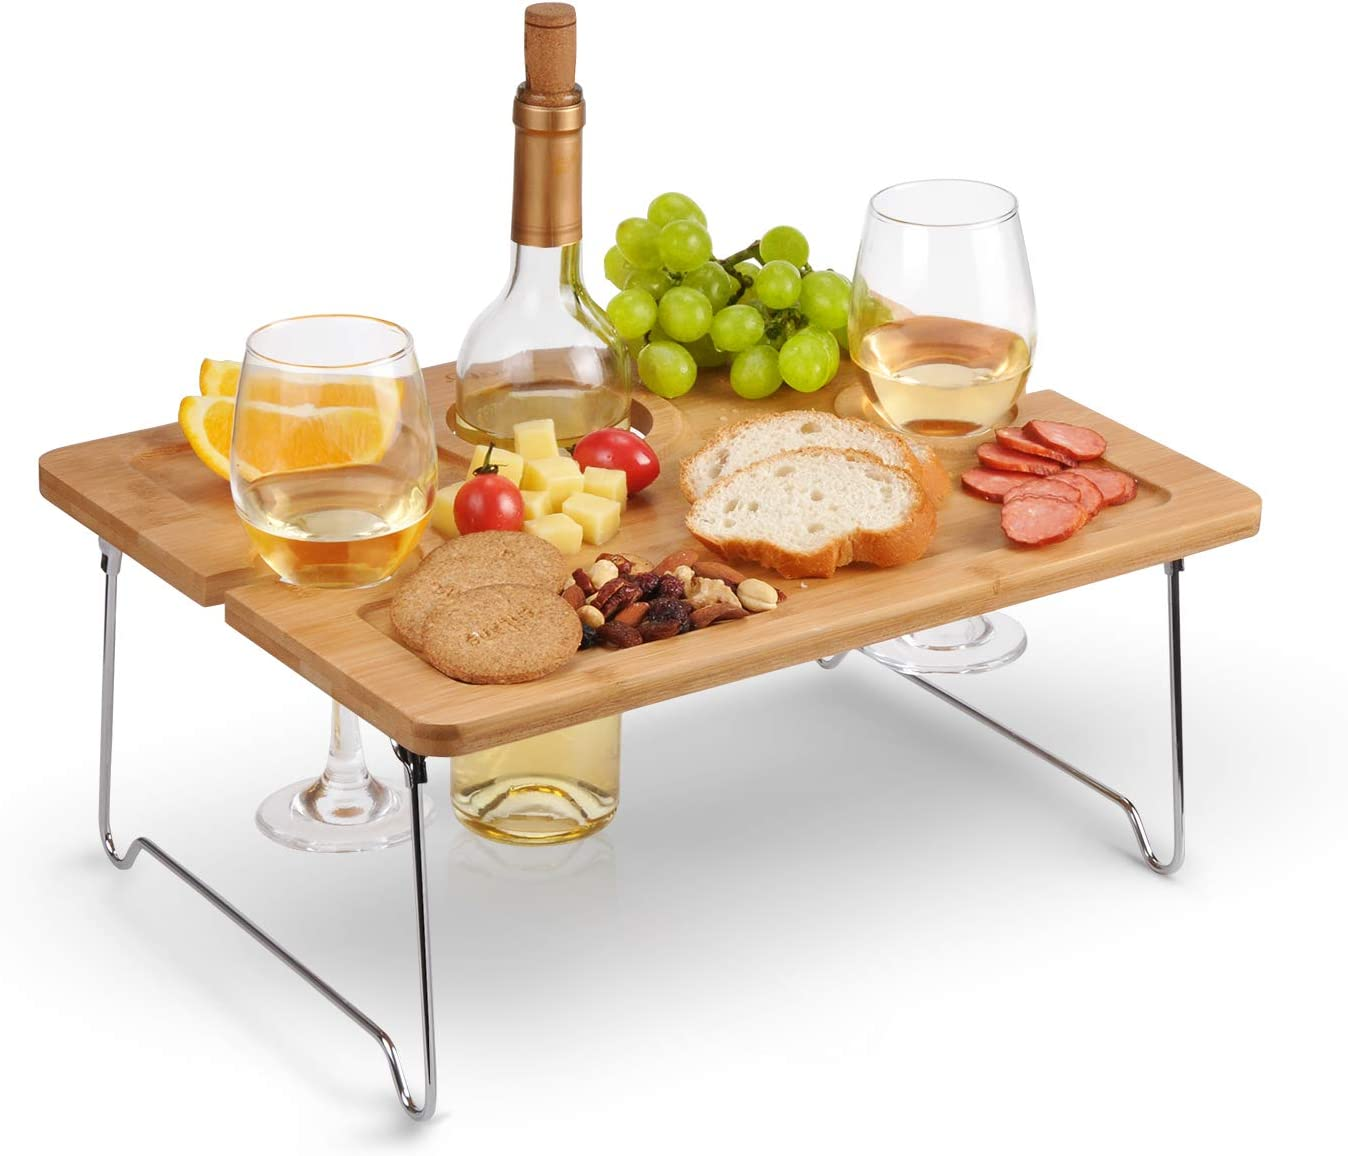 Tirrinia Outdoor Wine Picnic Table, Folding Portable Bamboo Wine Glasses Bottle, Snack and Cheese Holder Tray for Concerts at Park, Beach, Ideal Wine Lover Gift